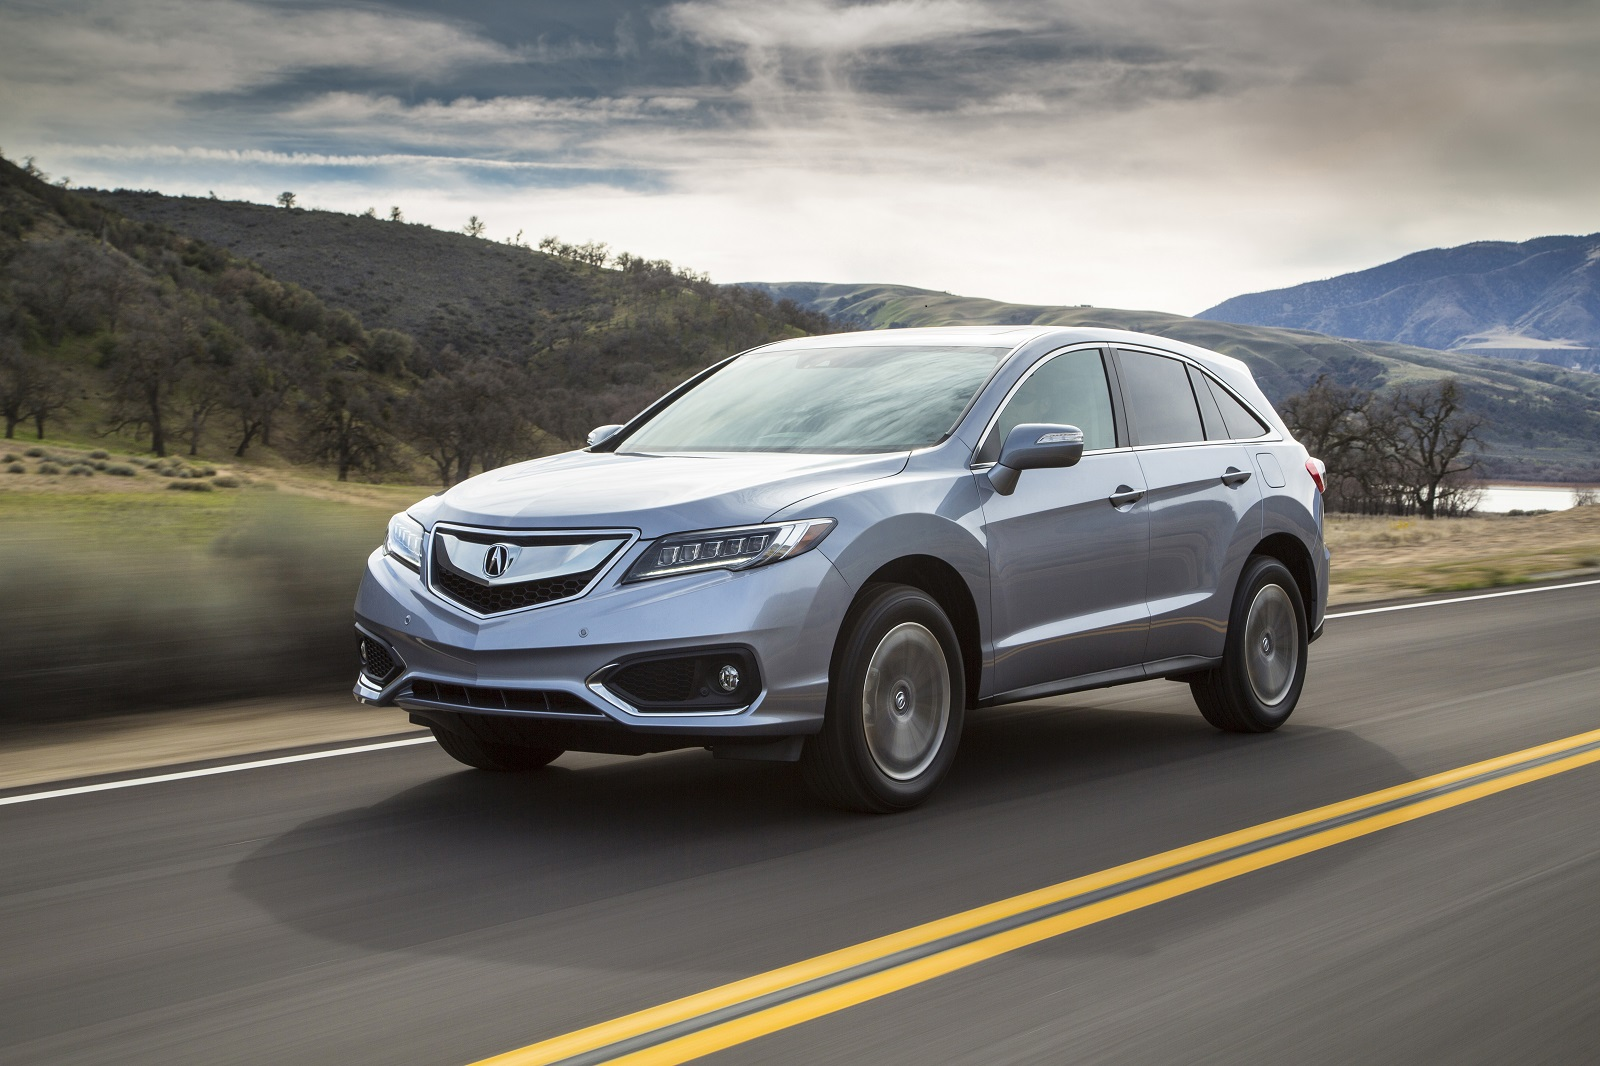 2016 Acura RDX Features Review - The Car Connection